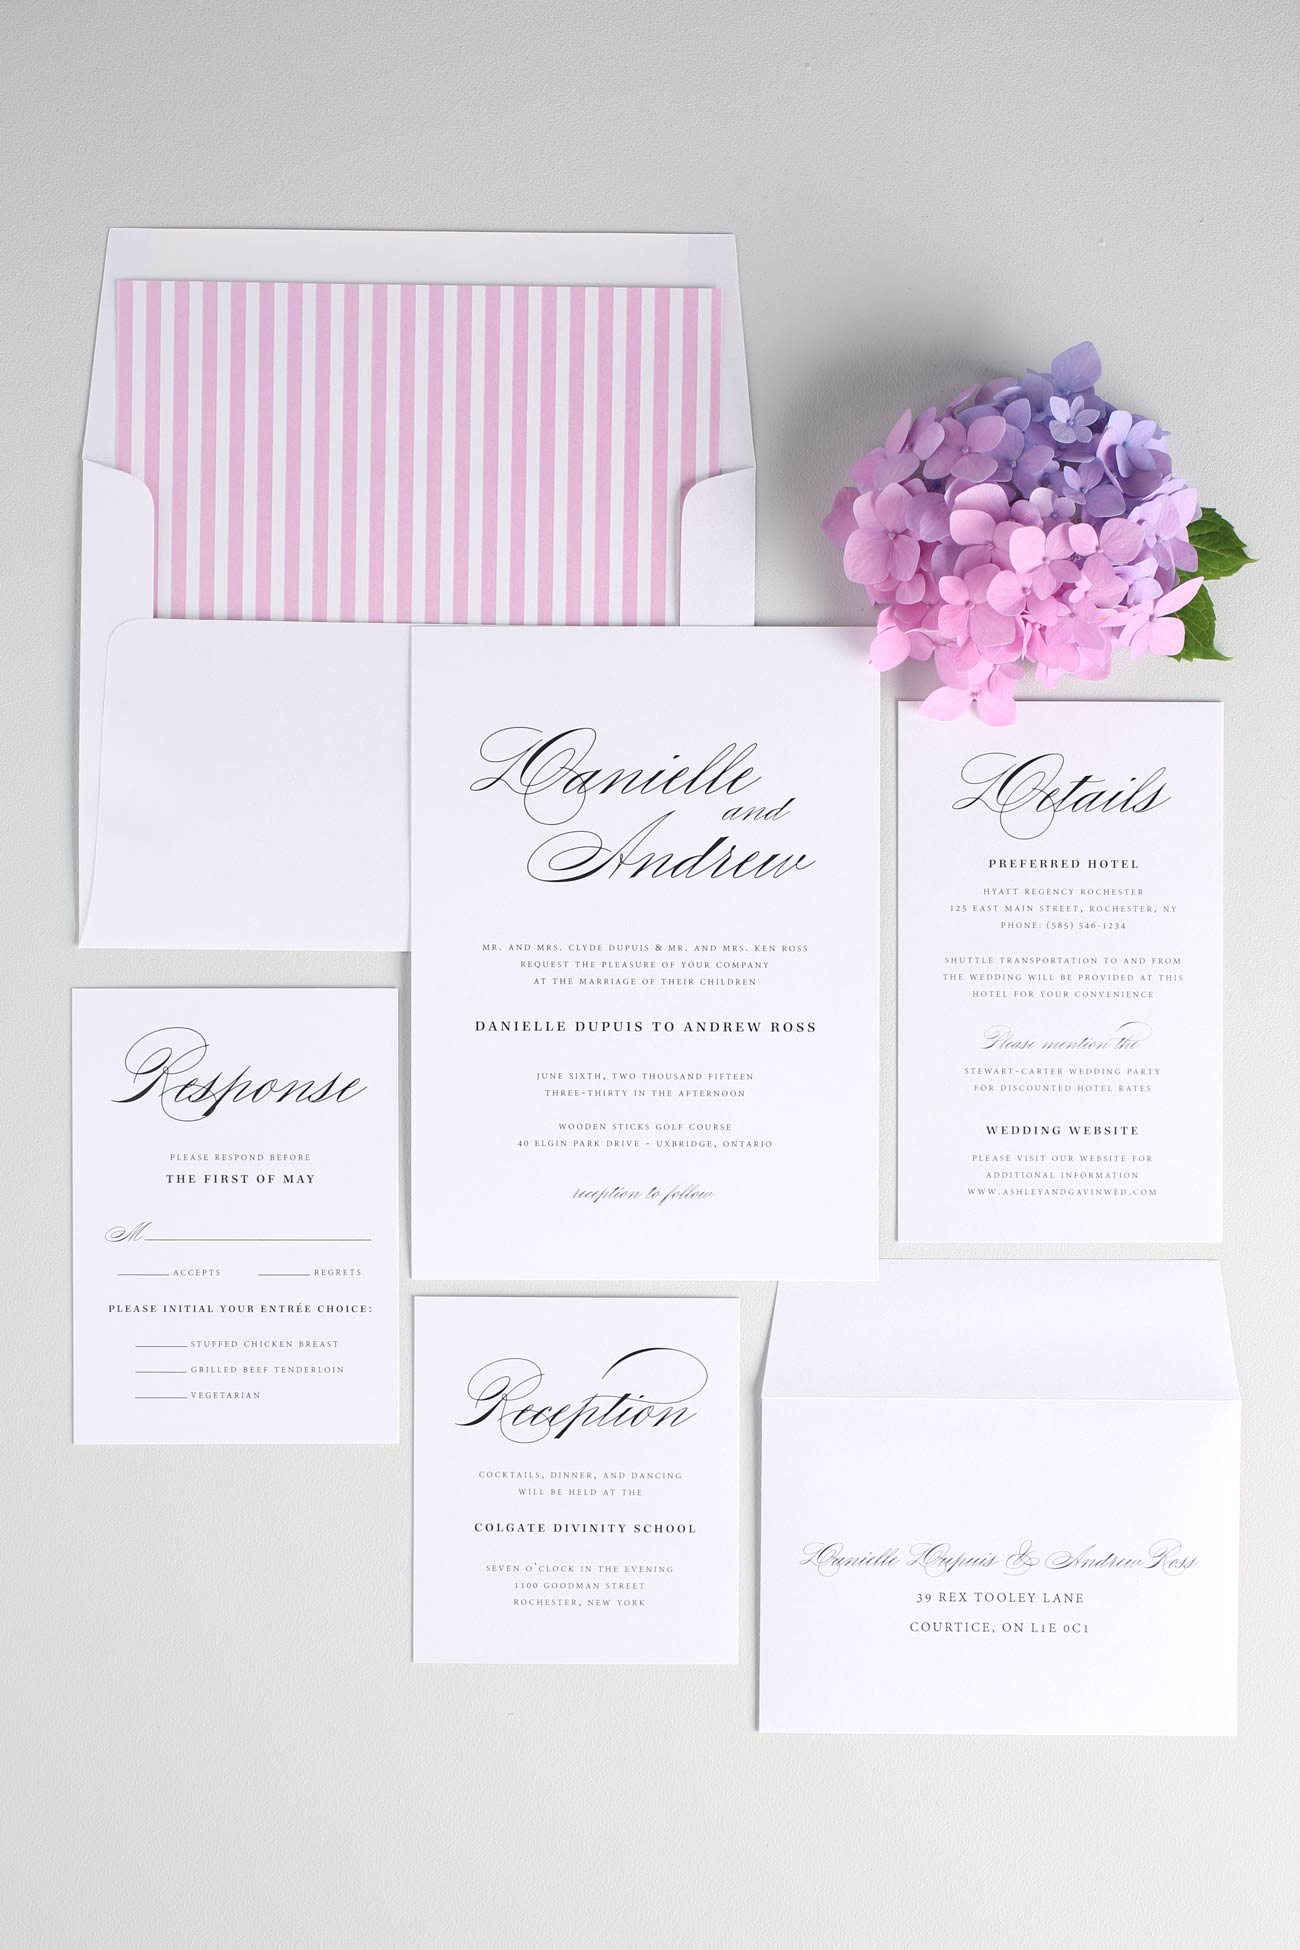 Calligraphy wedding invitations in pink